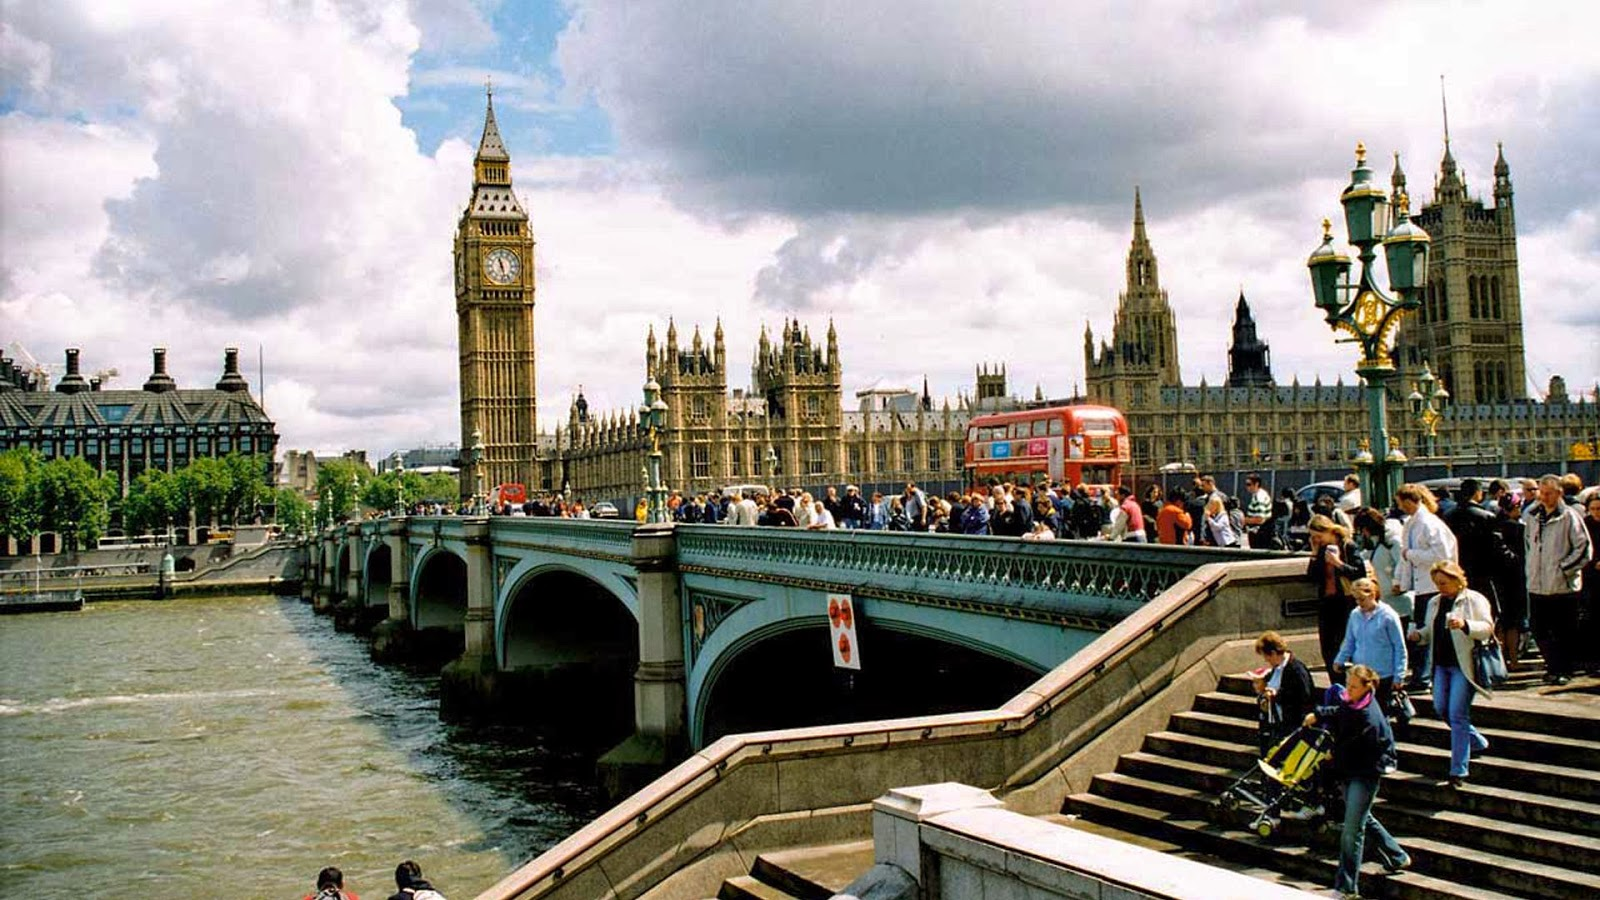 composed upon westminster bridge essays Poems by wordsworth and blake  saved essays  wordsworth's composed upon westminster bridge shows the city of london as beautiful and benign,.